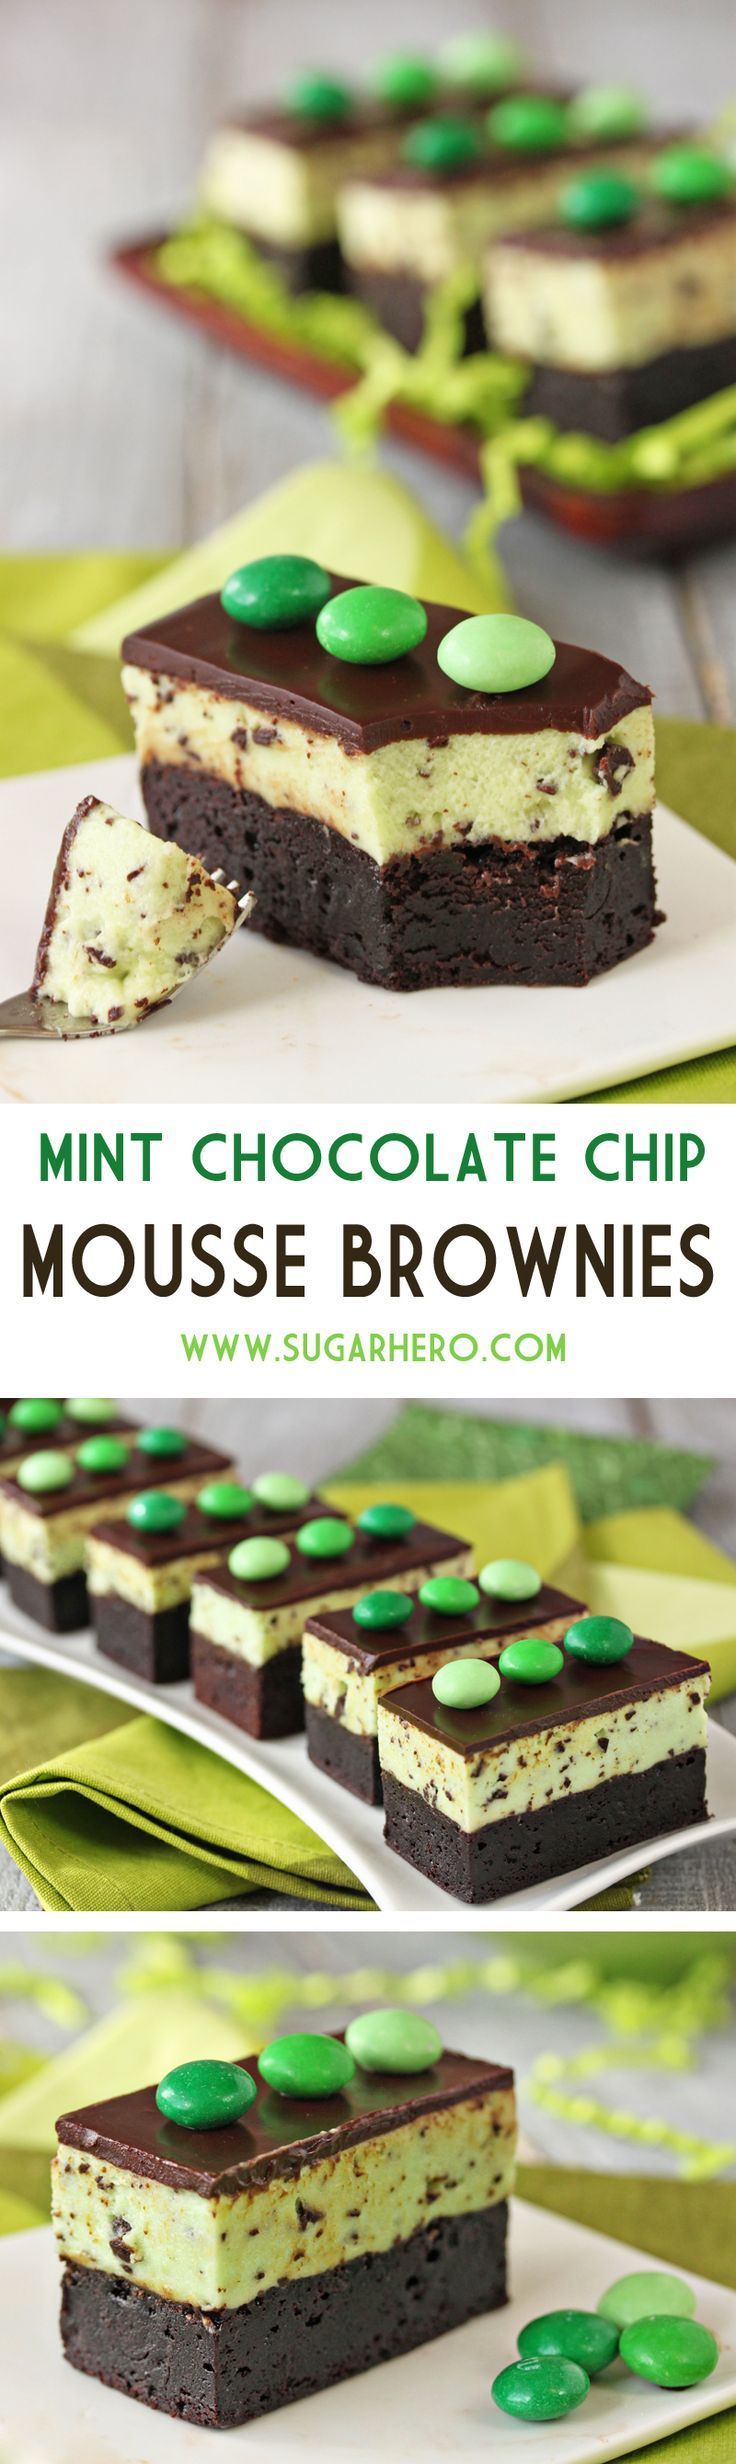 Mint Chocolate Chip Mousse Brownies - fudgy brownies, topped with light and fluffy mint chip mousse, and finished with shiny chocolate ganache. | From SugarHero.com